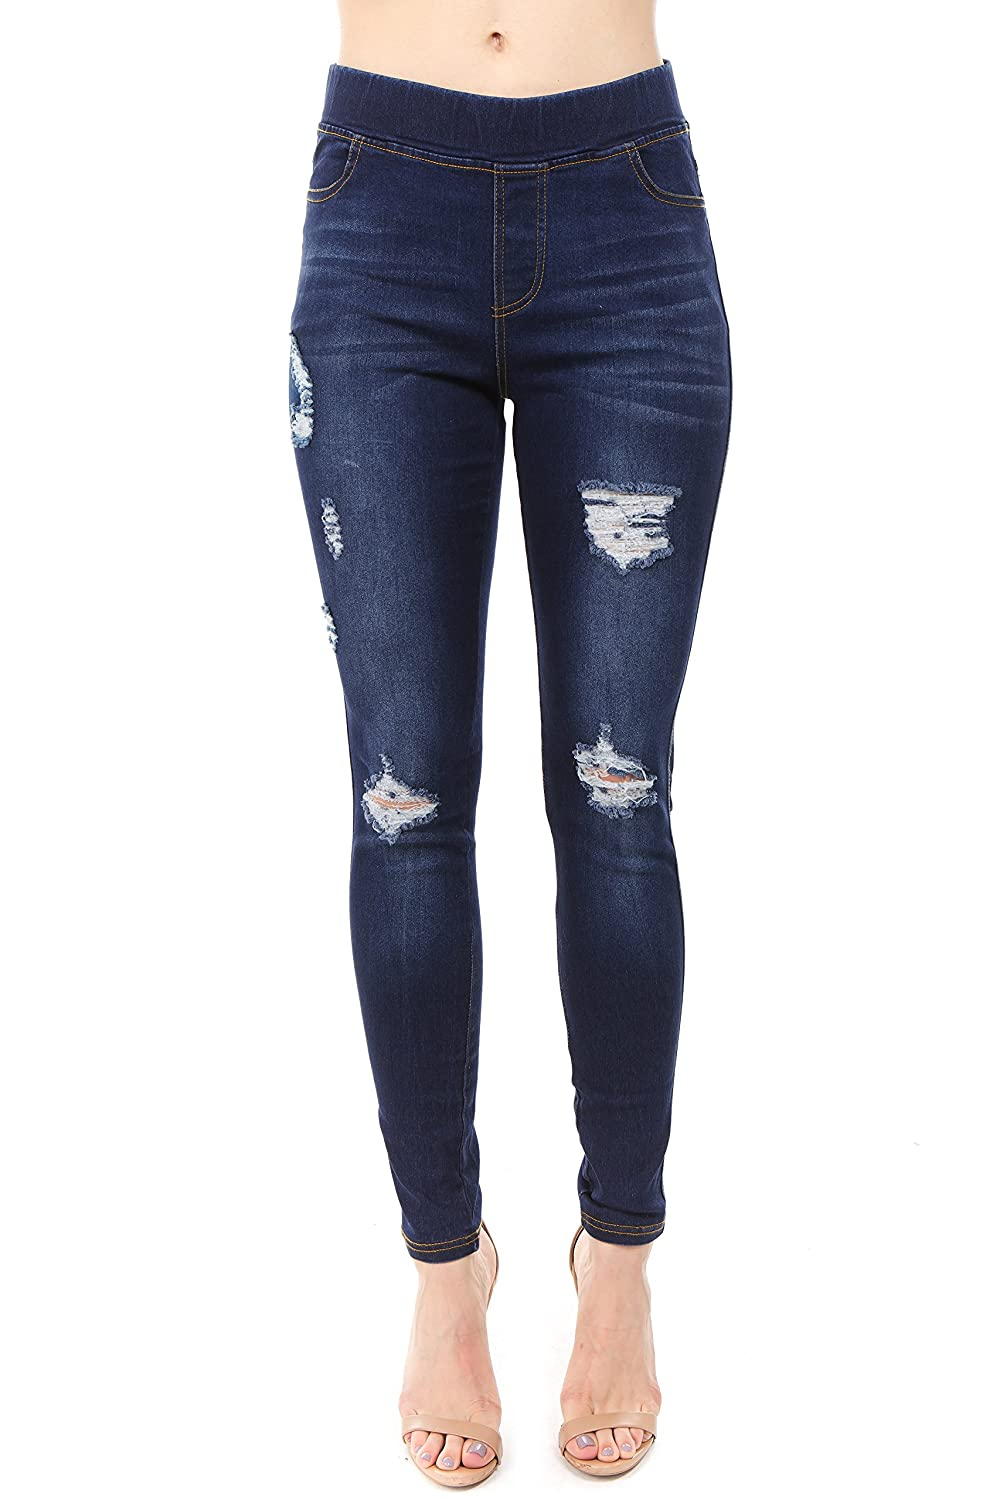 Dk bluee_dis3 Trinity Jeans Women's Distressed Ripped Cut Pull On Stretch Skinny Denim Jeggings